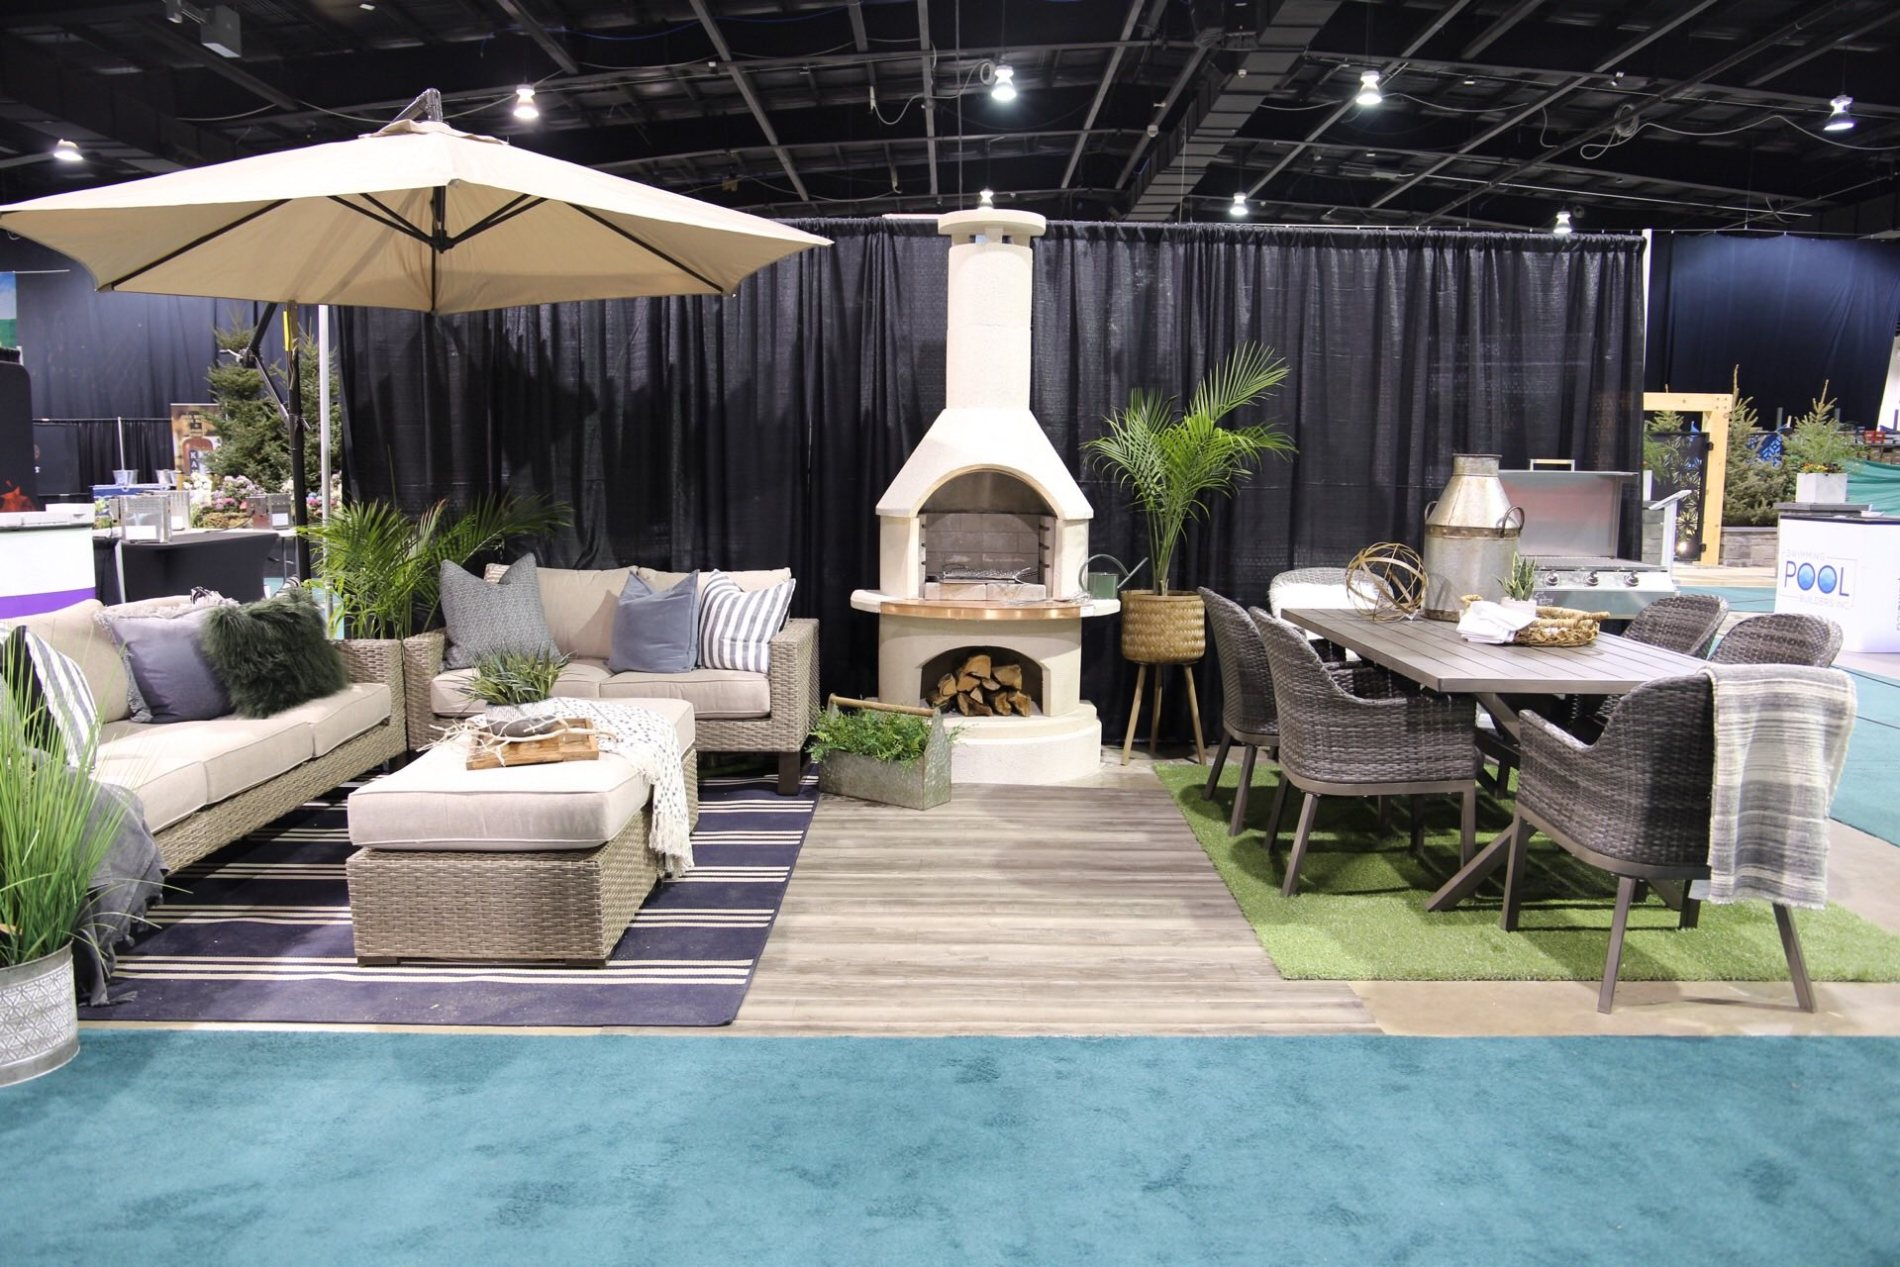 jaclyn harper / harper designs / backyard living expo